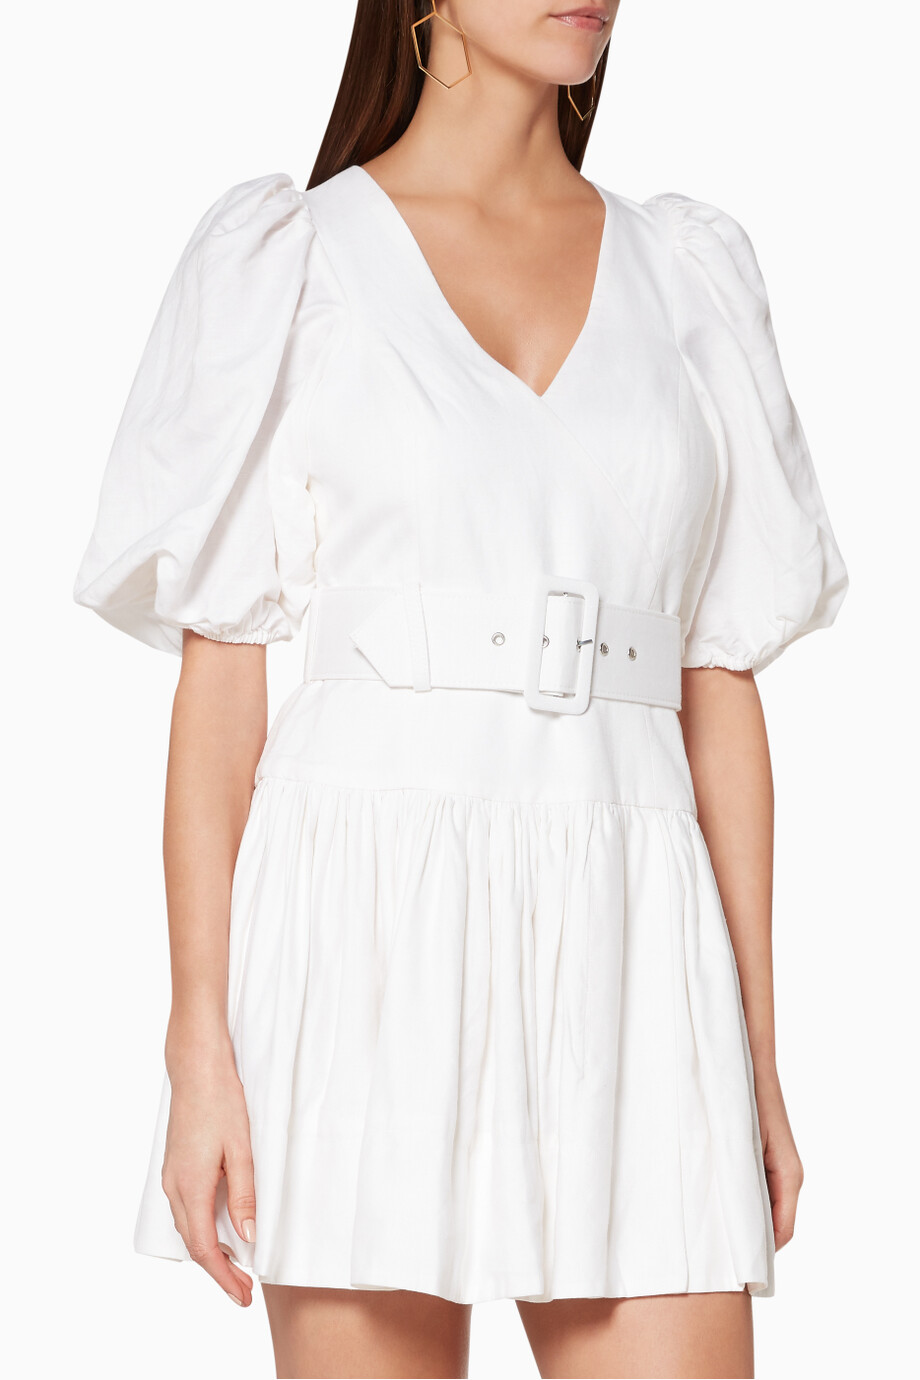 363a093ff2 Shop SHONA JOY Neutral White Gaia Linen Mini Dress for Women